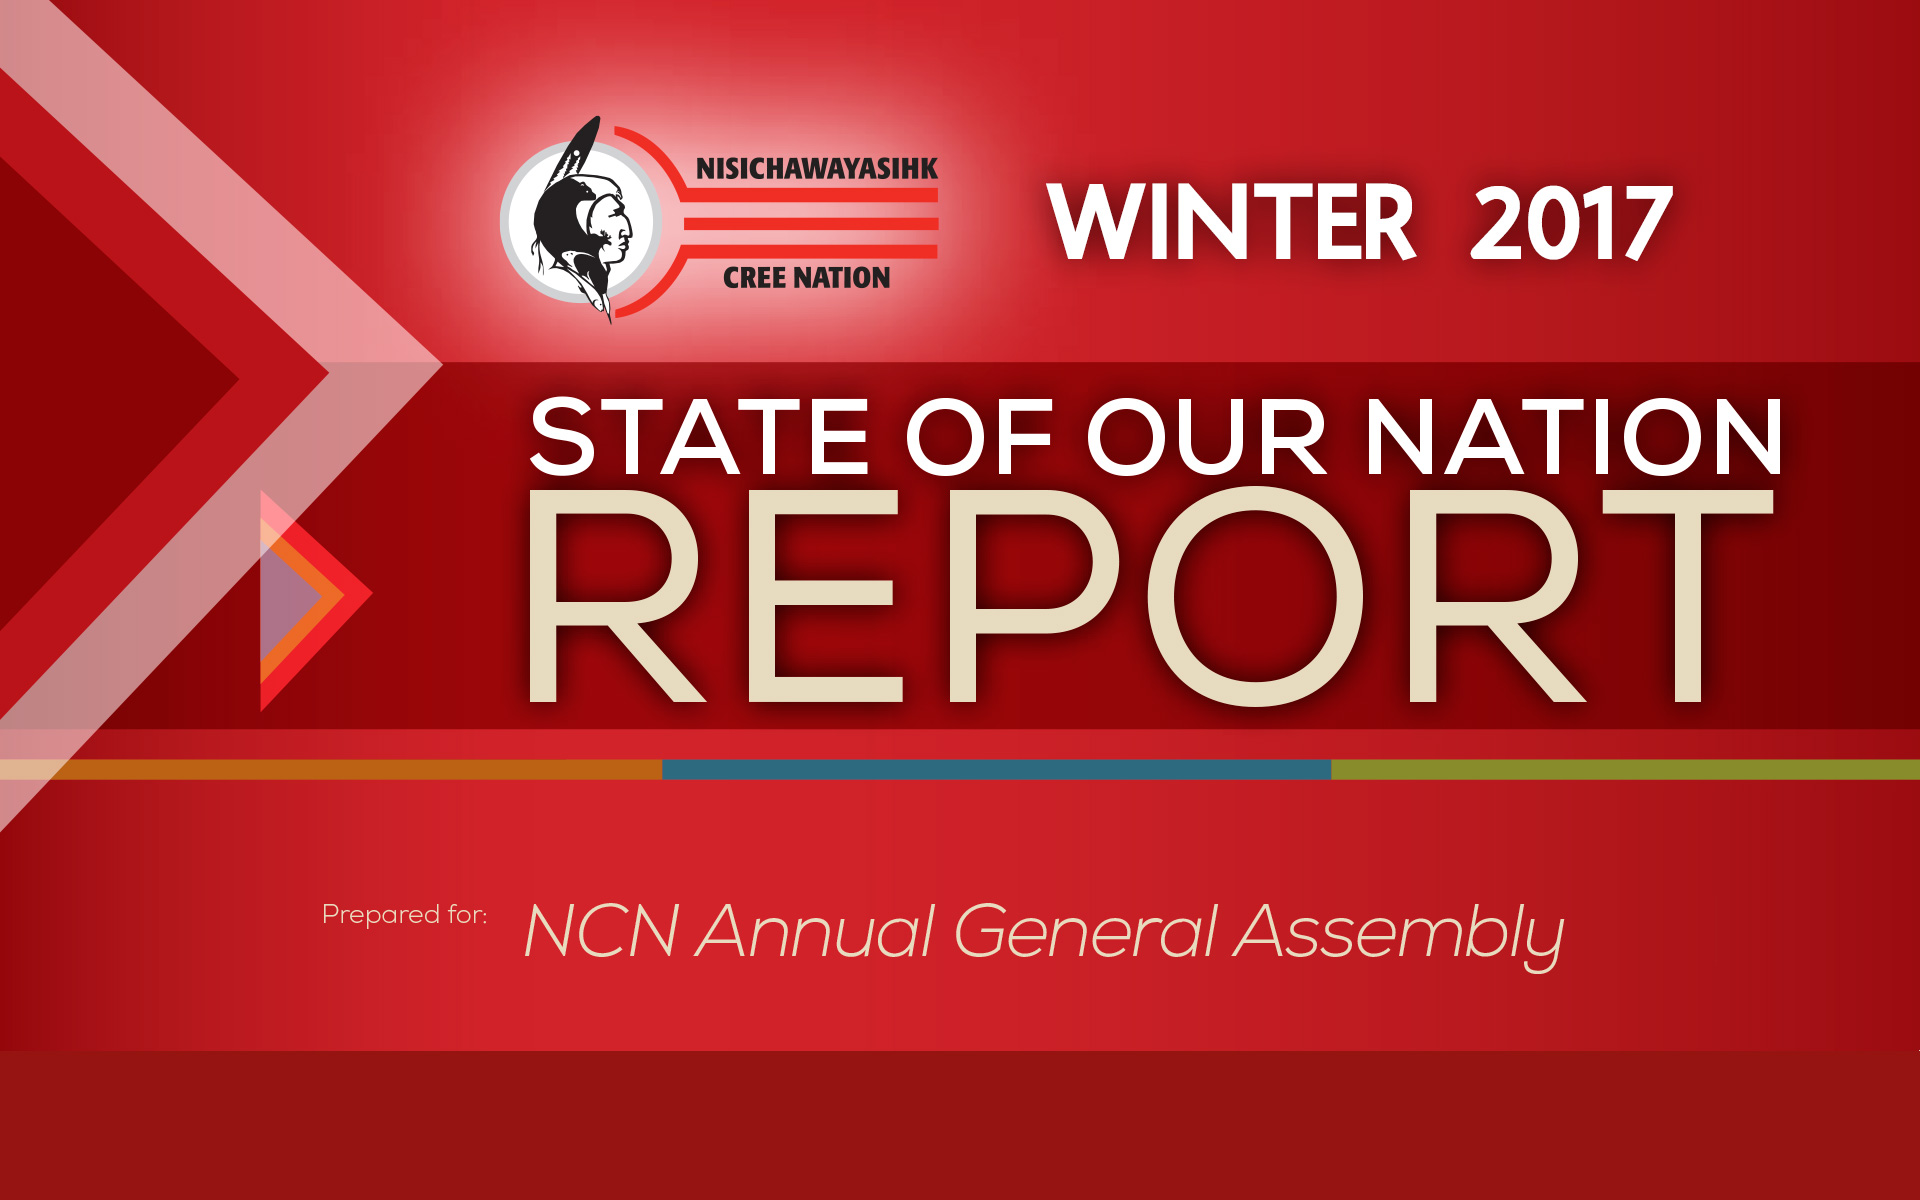 State of Our Nation Report - Winter 2017